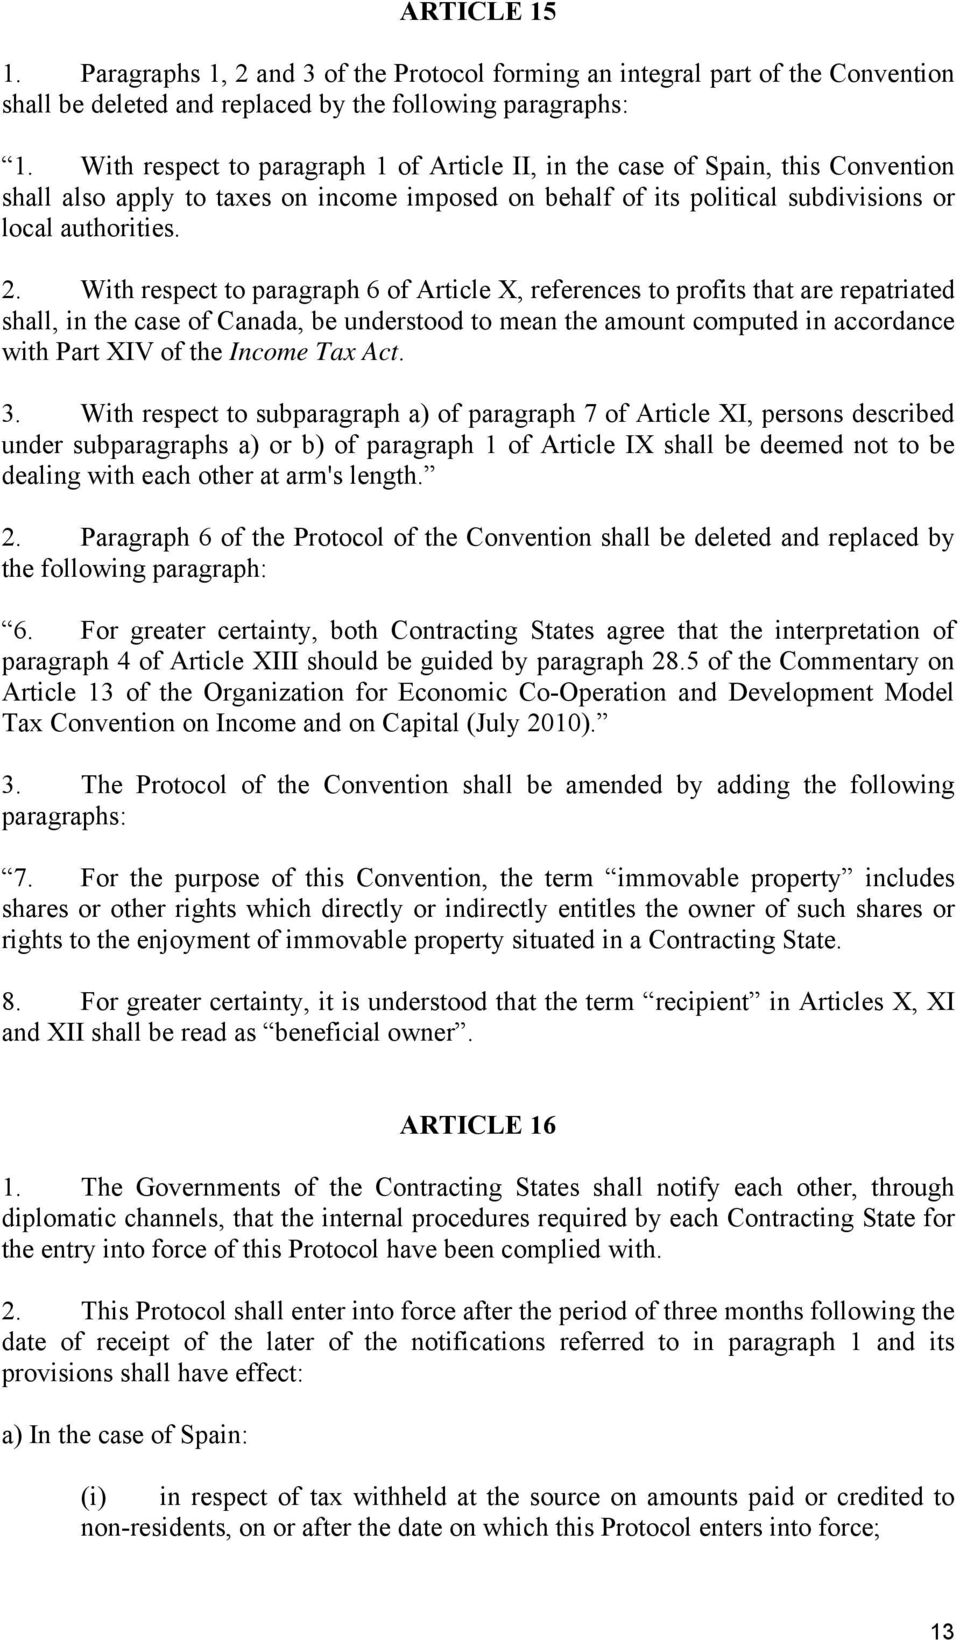 With respect to paragraph 6 of Article X, references to profits that are repatriated shall, in the case of Canada, be understood to mean the amount computed in accordance with Part XIV of the Income